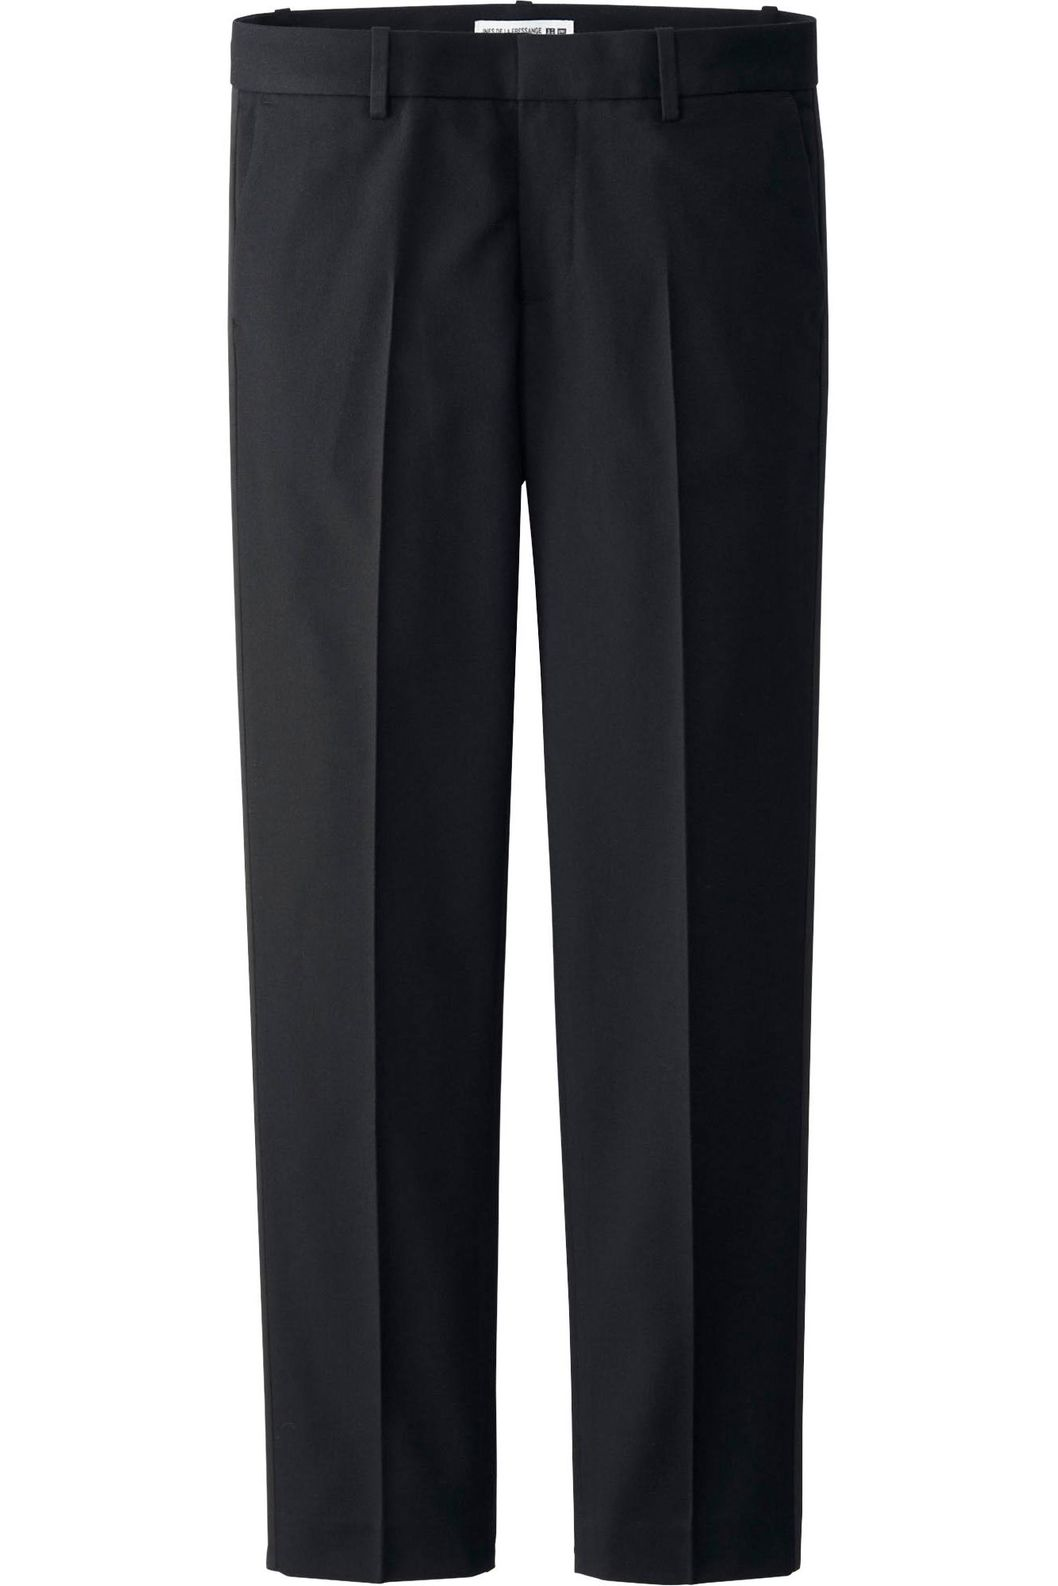 A Pair Of Classic Tuxedo Pants To Wear Anywhere The Cut